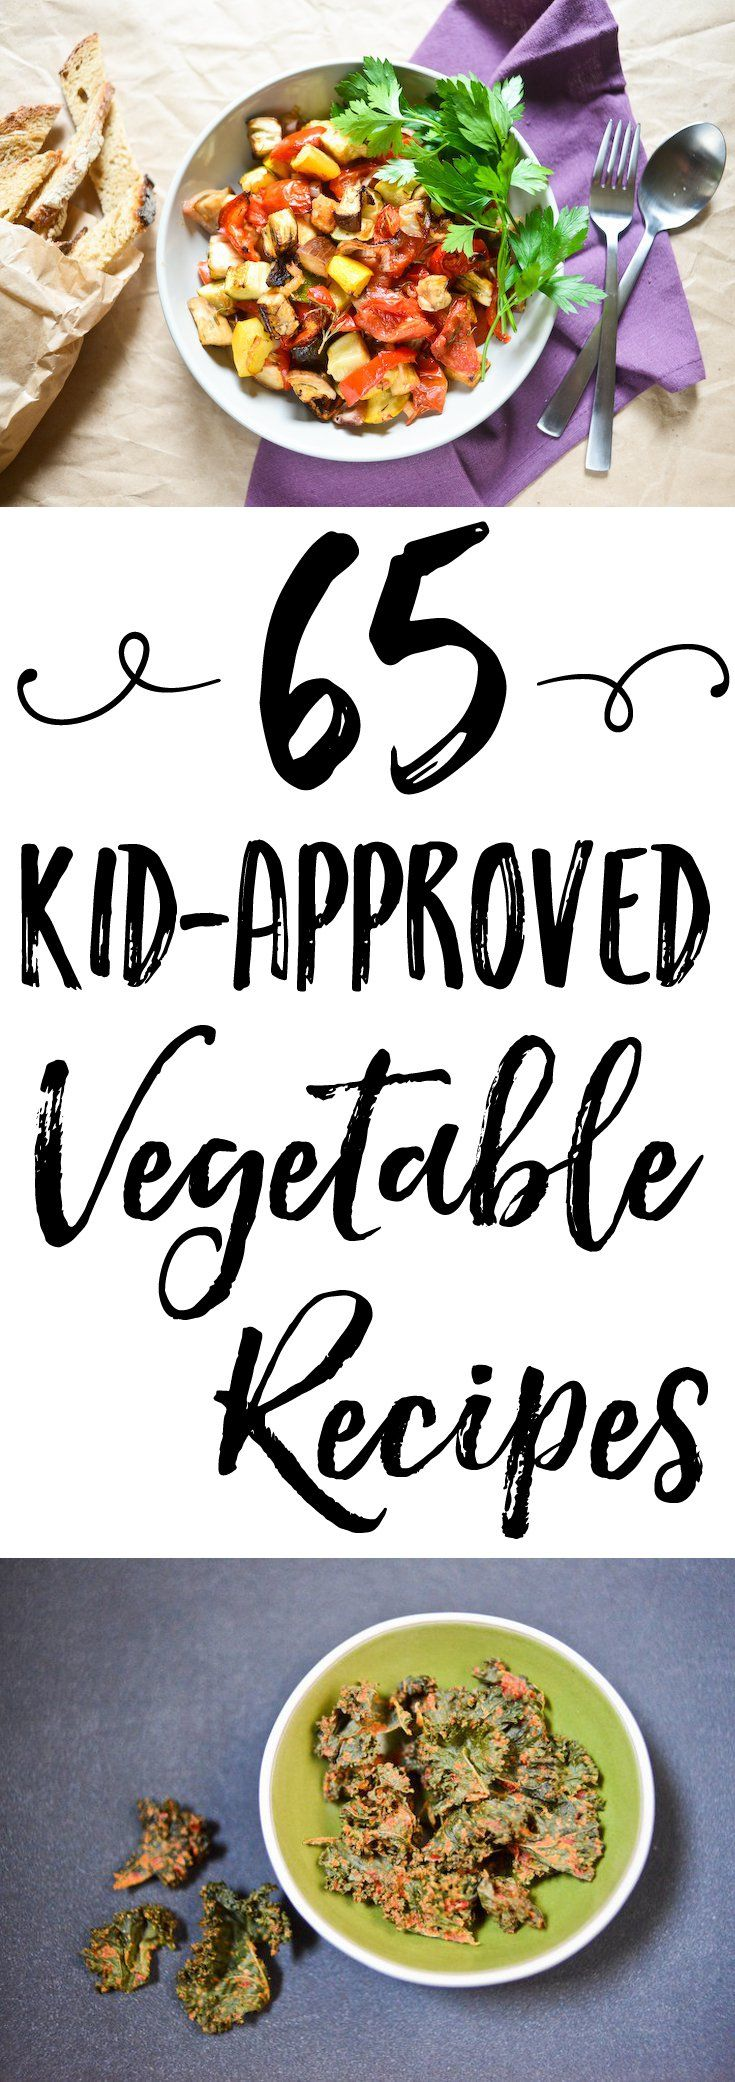 Need ideas and inspiration to get your children to eat more vegetables? This guide of 65 kid-friendly vegetable recipes is just what you need!